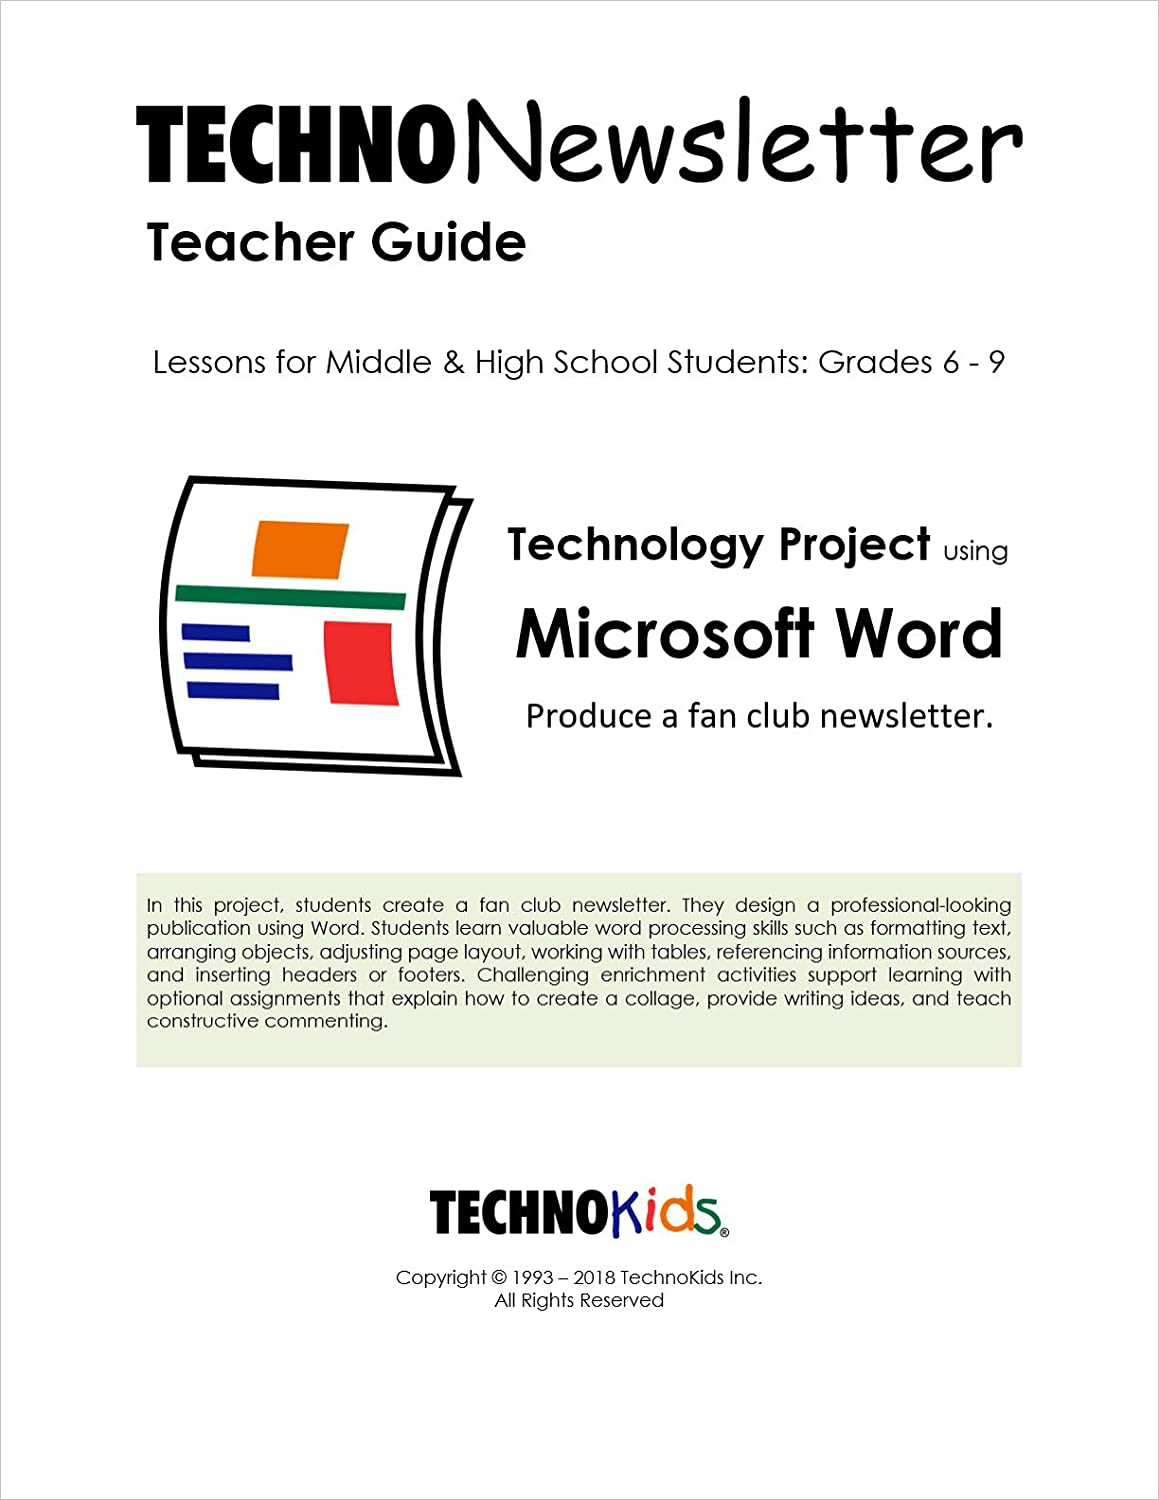 microsoft word assignments for high school students